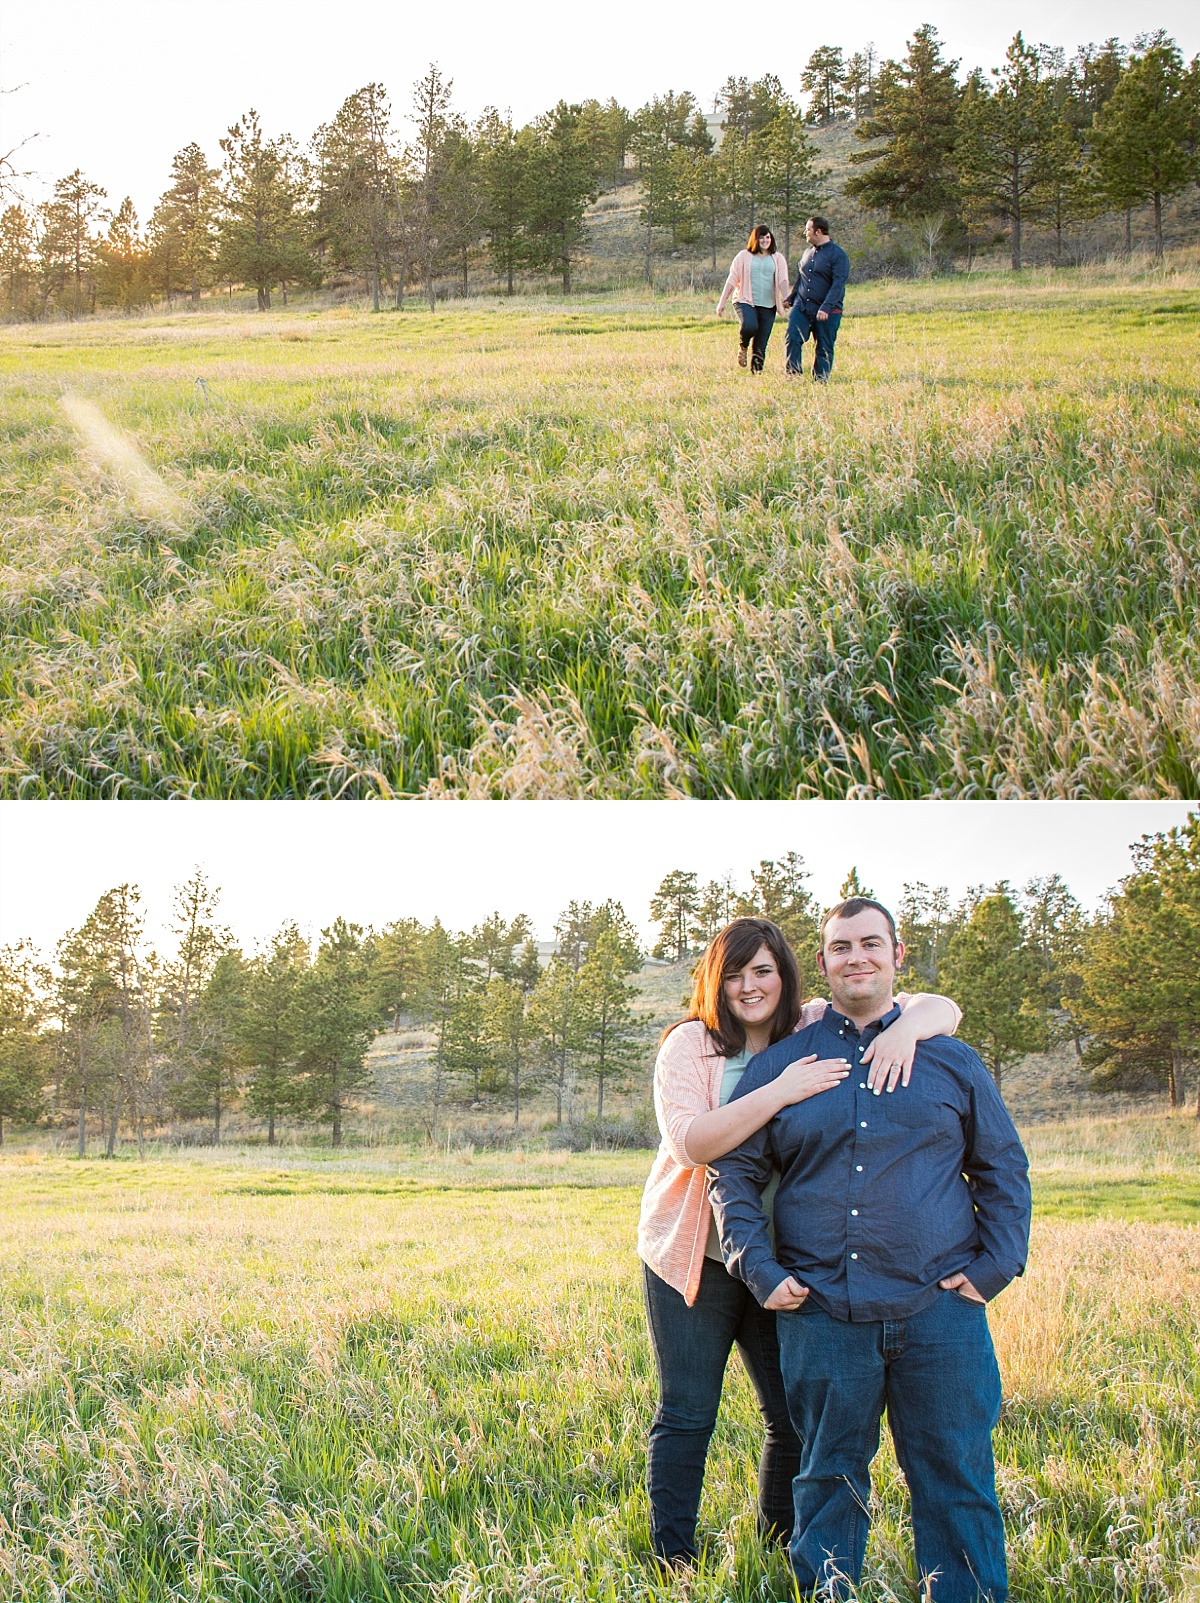 outdoor campus west rapid city south dakota engagement photos 4